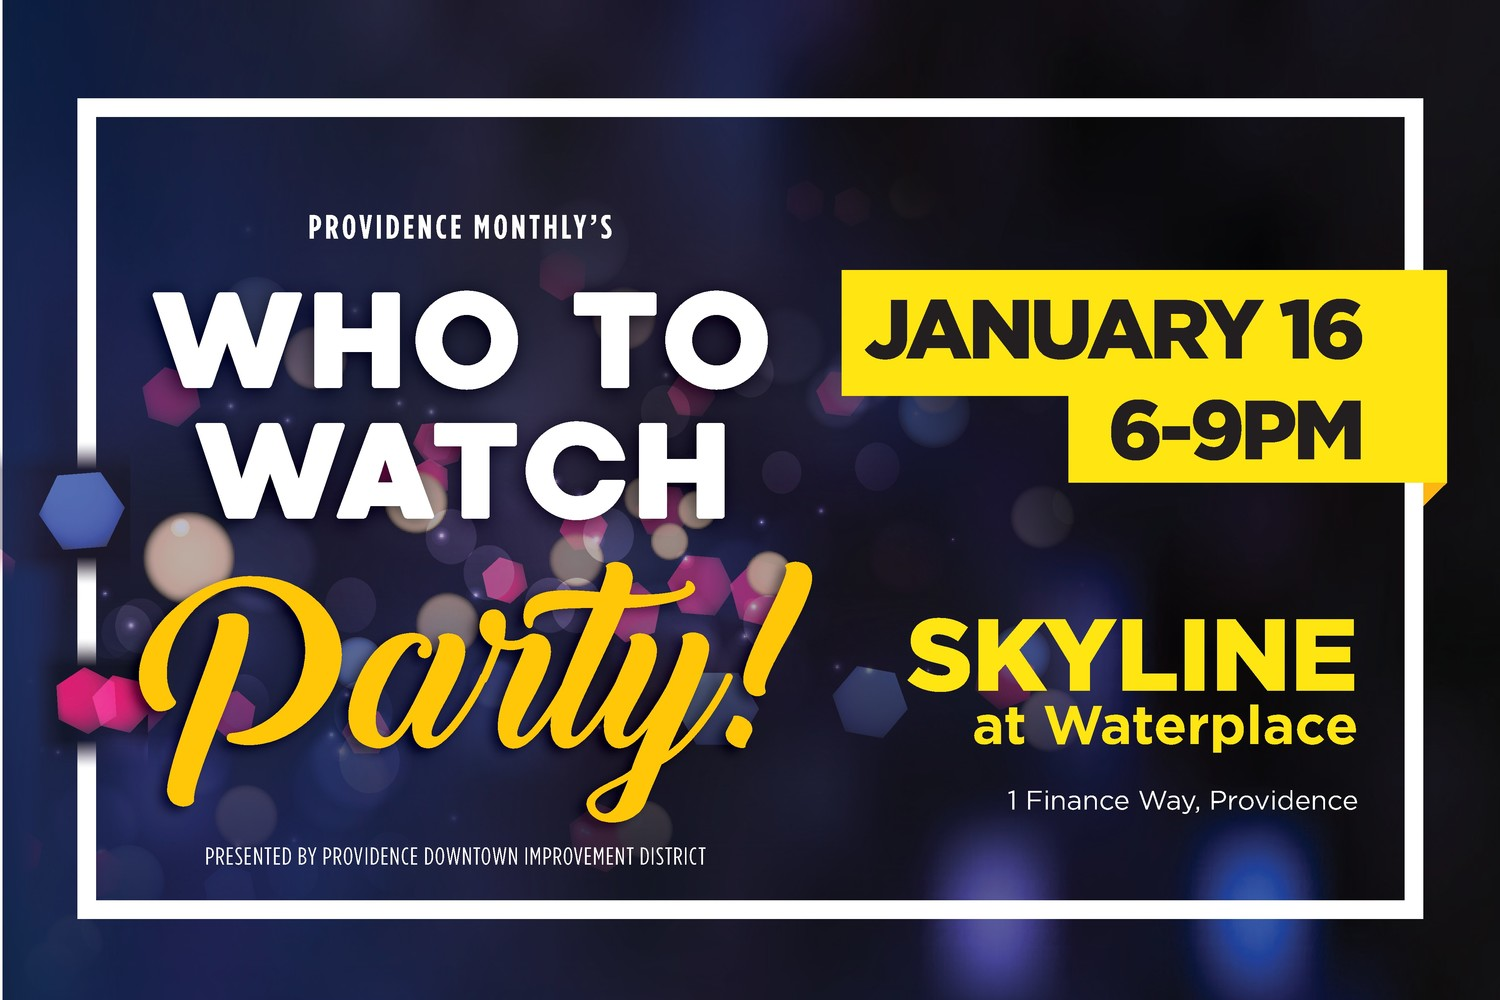 Meet RI's new wave of changemakers, enjoy craft cocktails, music, and more as the Who to Watch Party comes to Skyline at Waterplace, January 16